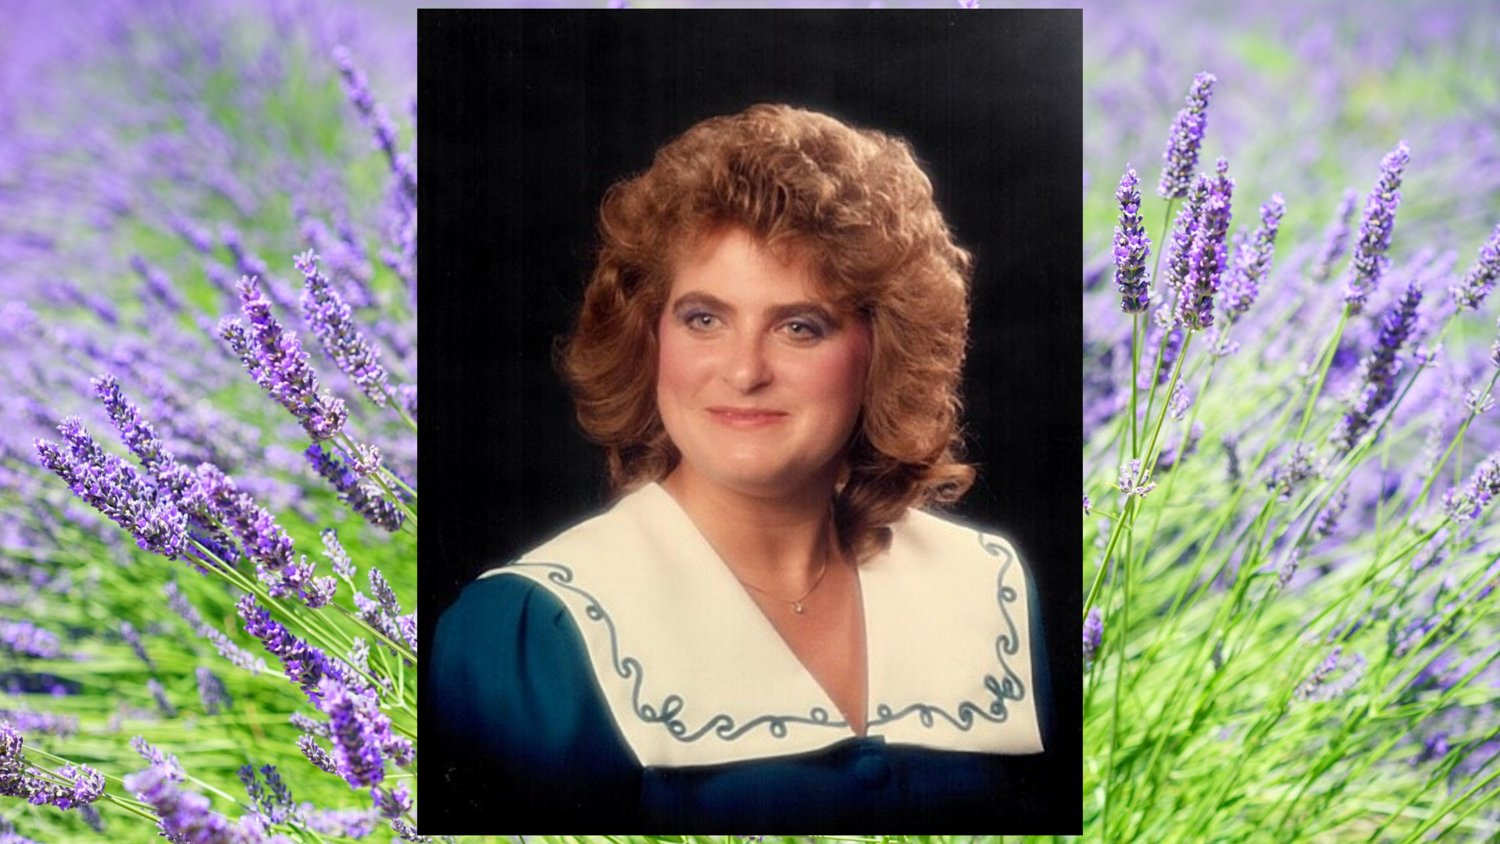 Janet Mettey passed away July 26. She was a long-time Katy resident and proud aunt who enjoyed watching her nieces and nephews in sports and watching monster truck rallies. She is deeply missed by her family and loved ones.